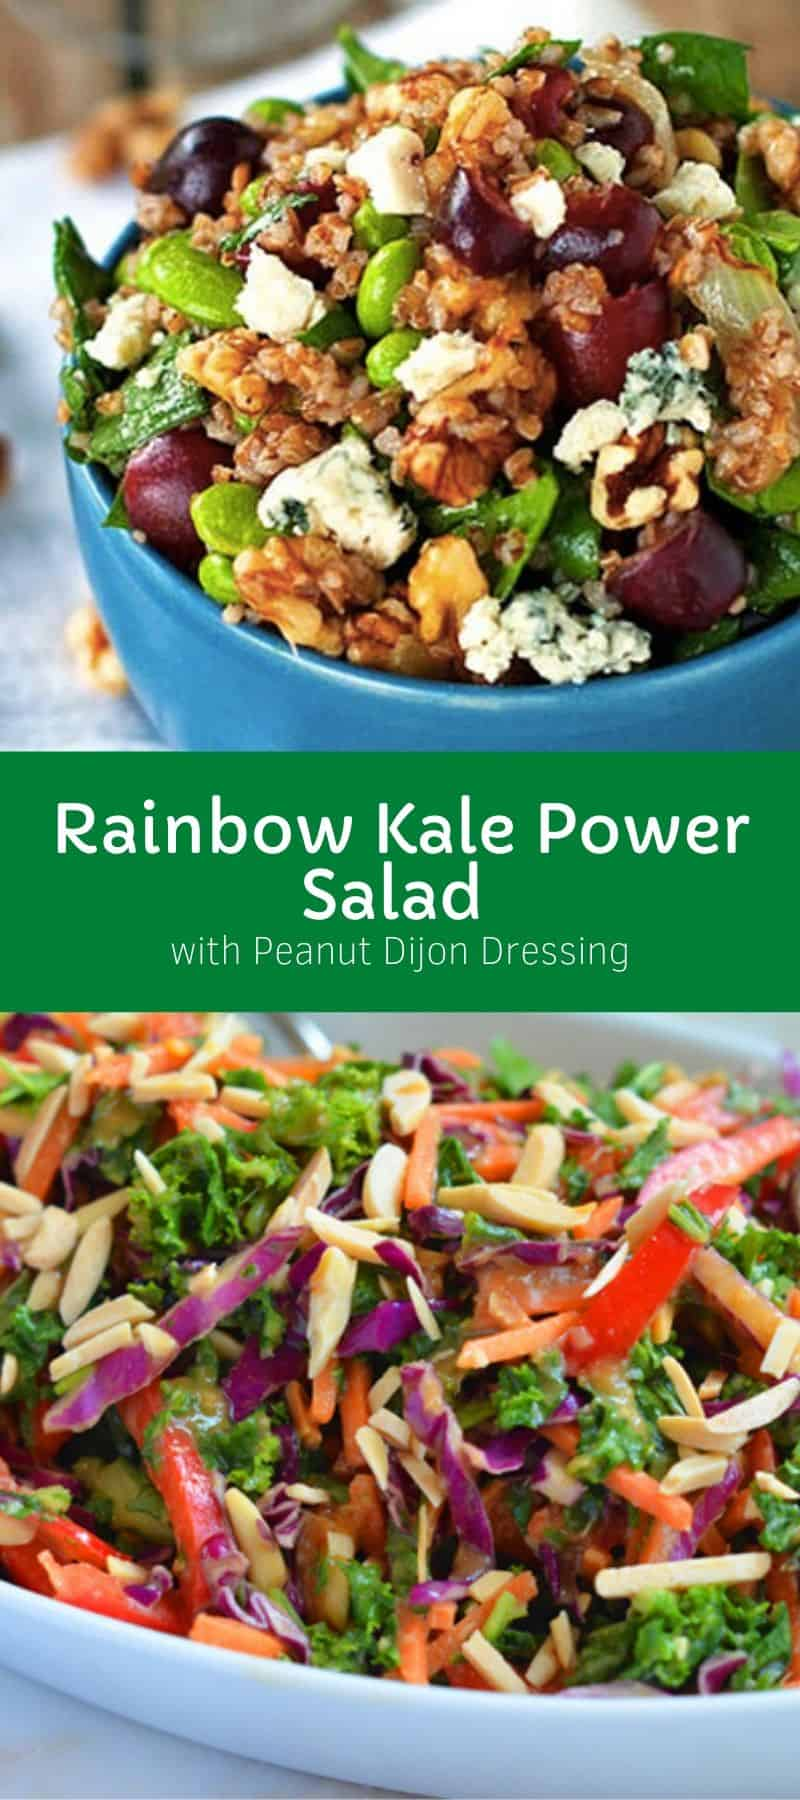 Rainbow Kale Power Salad with Peanut Dijon Dressing 3